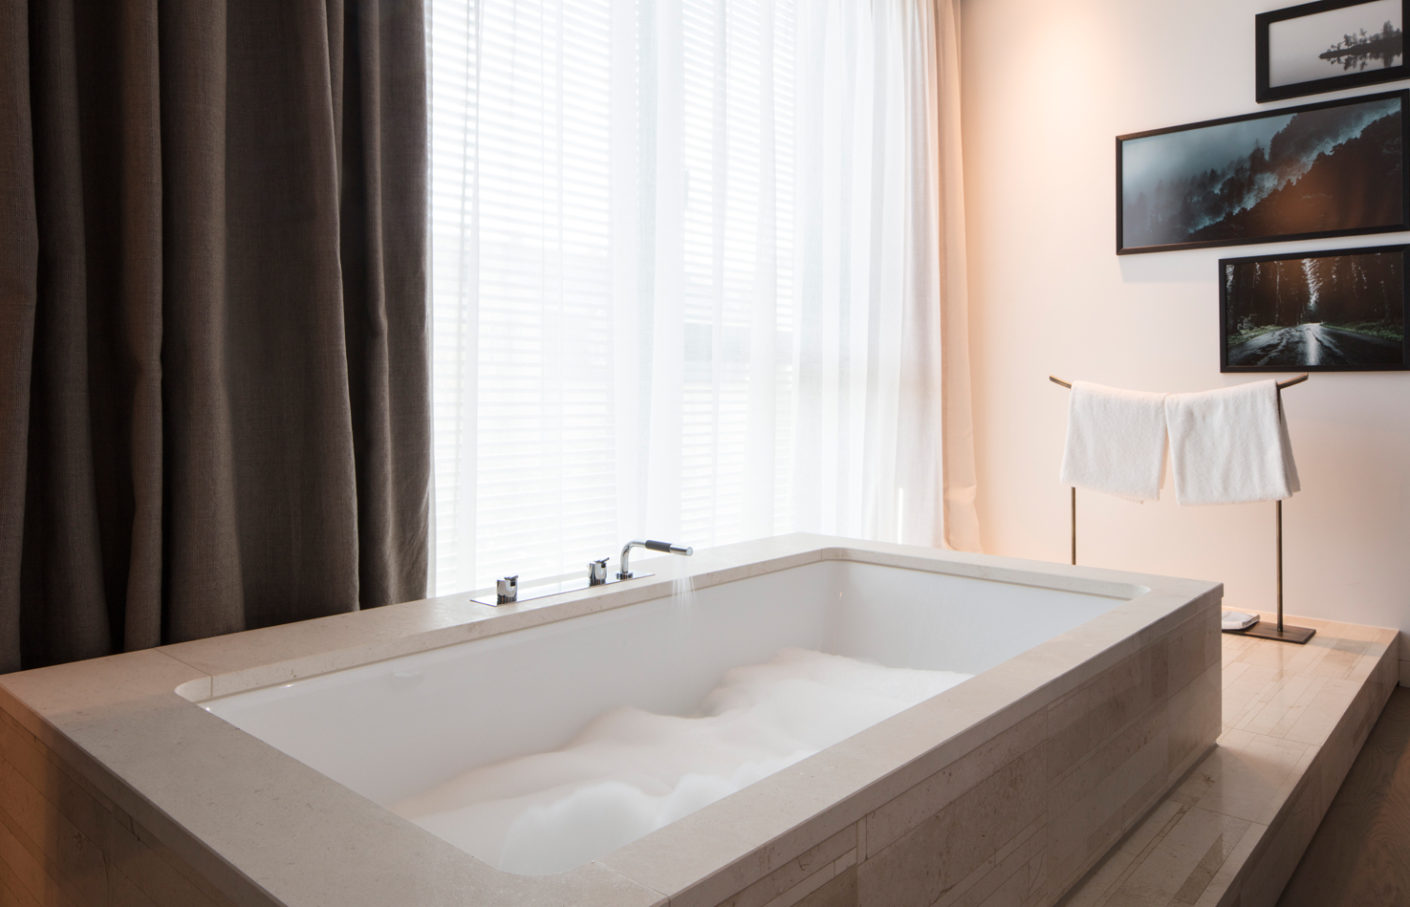 Fittings by Vola were installed in the spacious bathrooms of the Hotel Roomers in Baden-Baden.